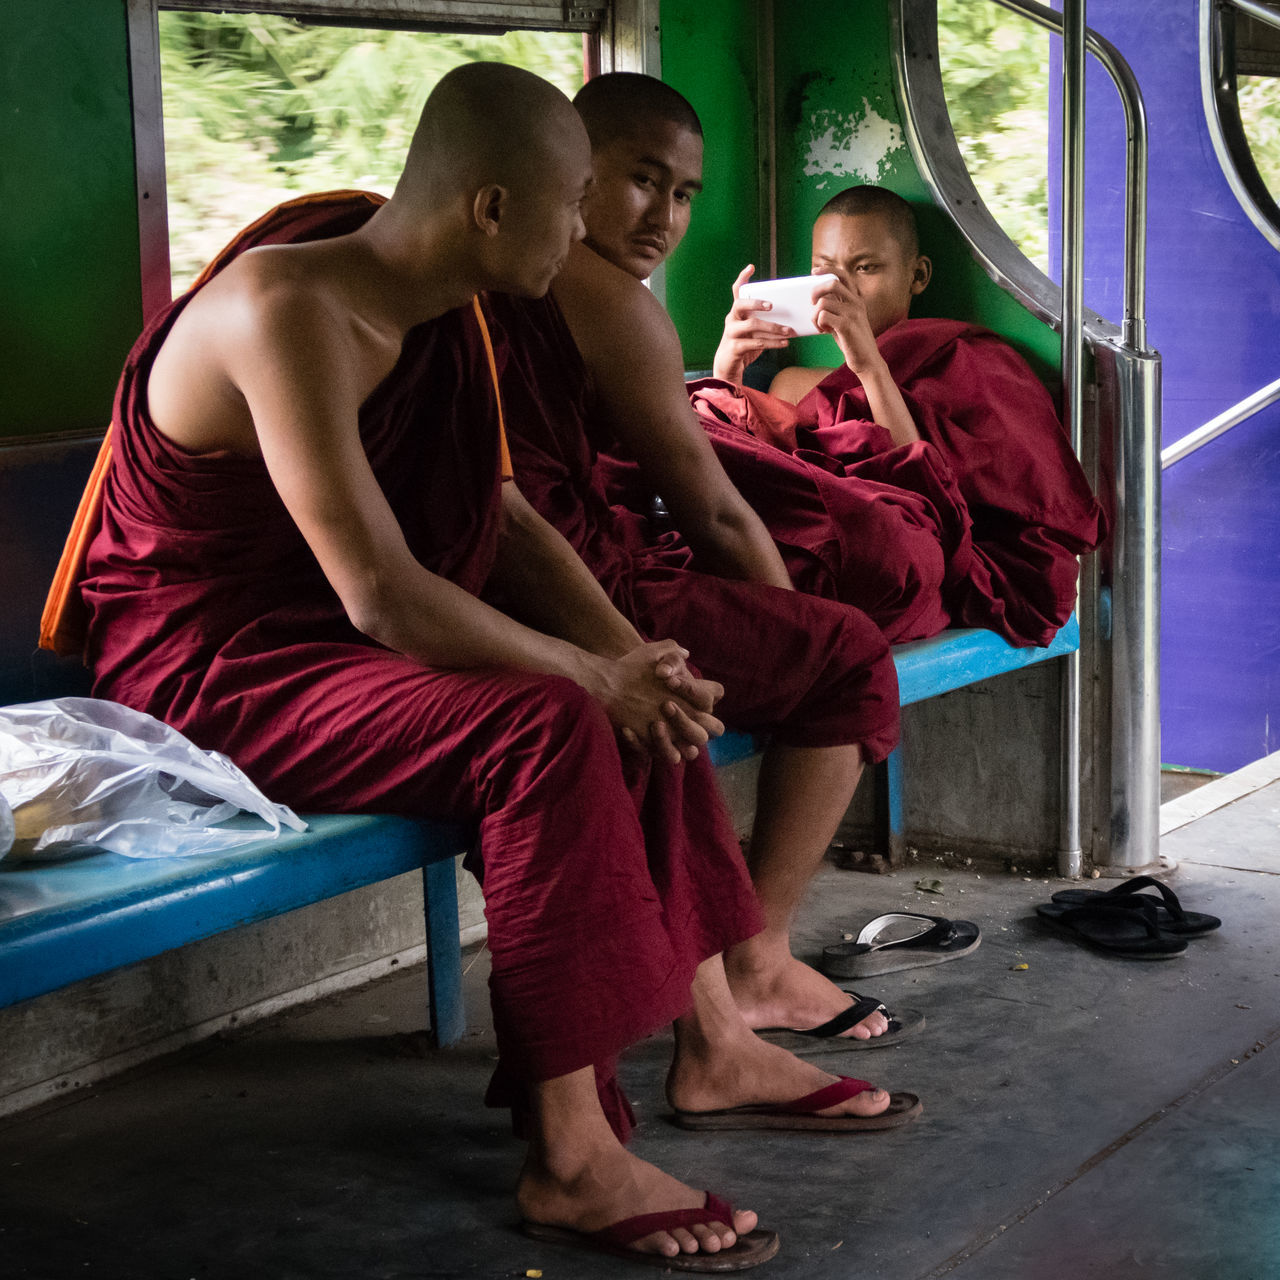 Buddhism Burma Circle Line Commuters Commuting Cultures Day Monks Myanmar Novice Monk Novices On The Train Real People Religion Religion And Beliefs Street Photography Togetherness Yangon Young Adult Young Adults Miles Away